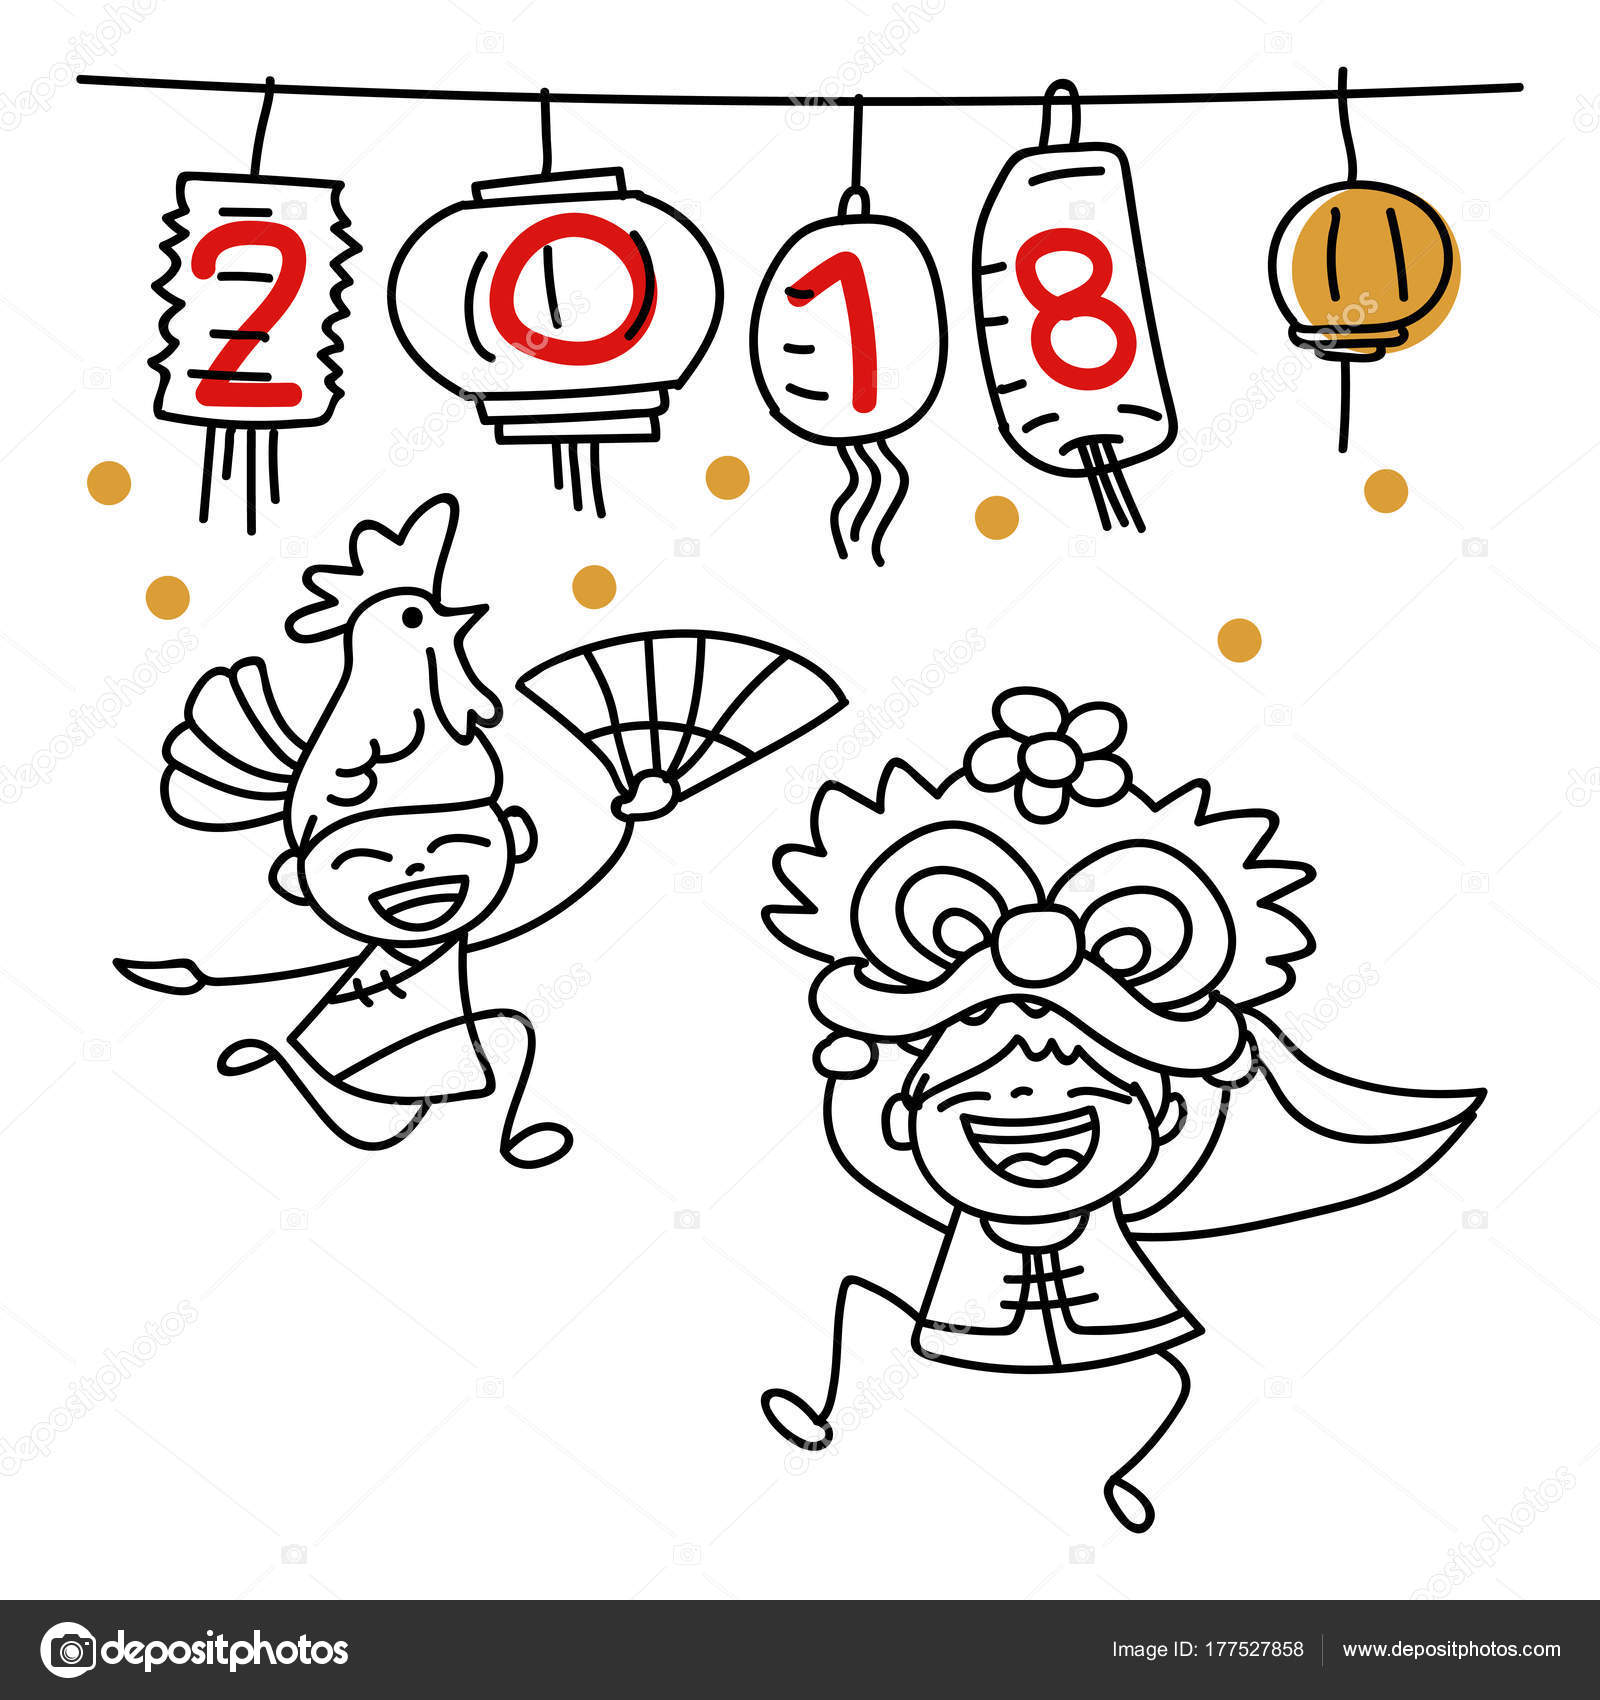 Happy chinese nehand drawing cartoon character chinese people dancing lion dance and kid happy chinese new year 2018 moon year lunar year concept line